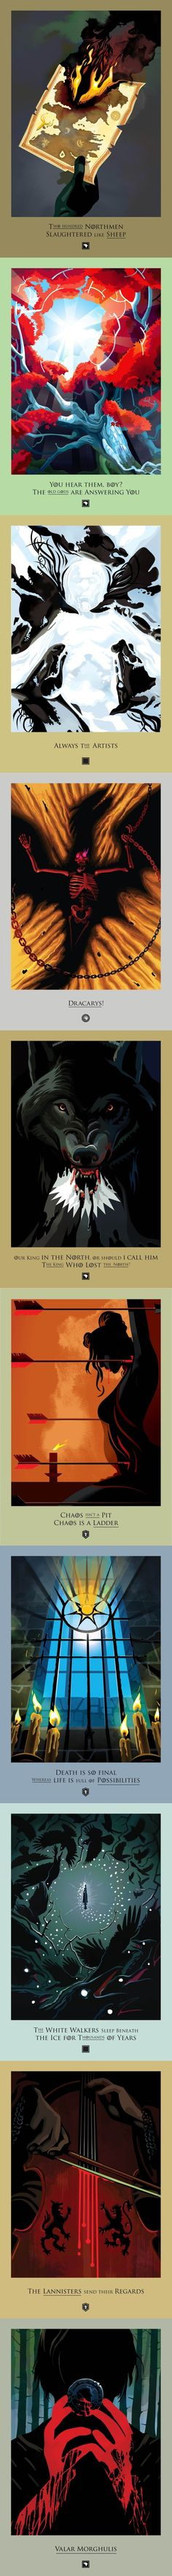 Beautiful deaths: Game of Thrones: Season 3 Chapters: 1-10 by Robert M. Ball.